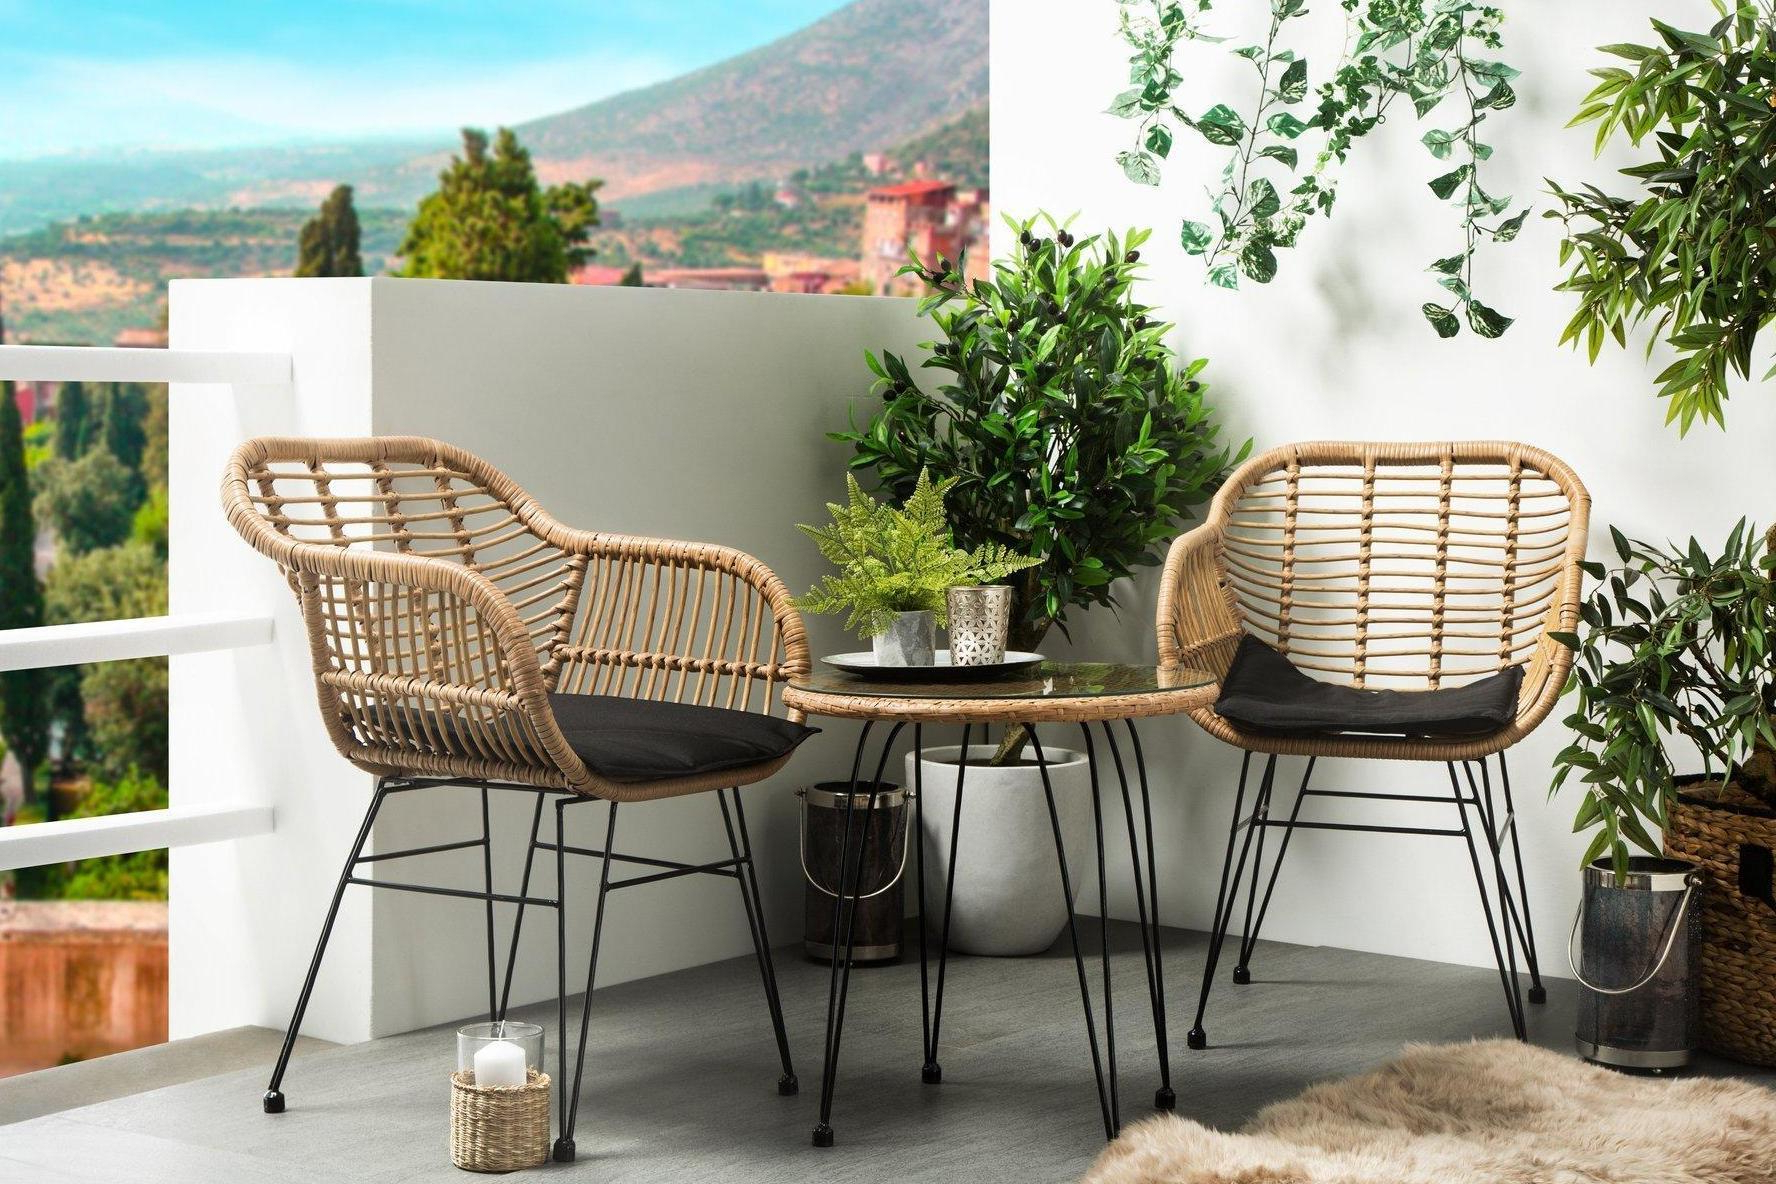 Current Best Small Outdoor Table And Chair Sets (View 24 of 25)